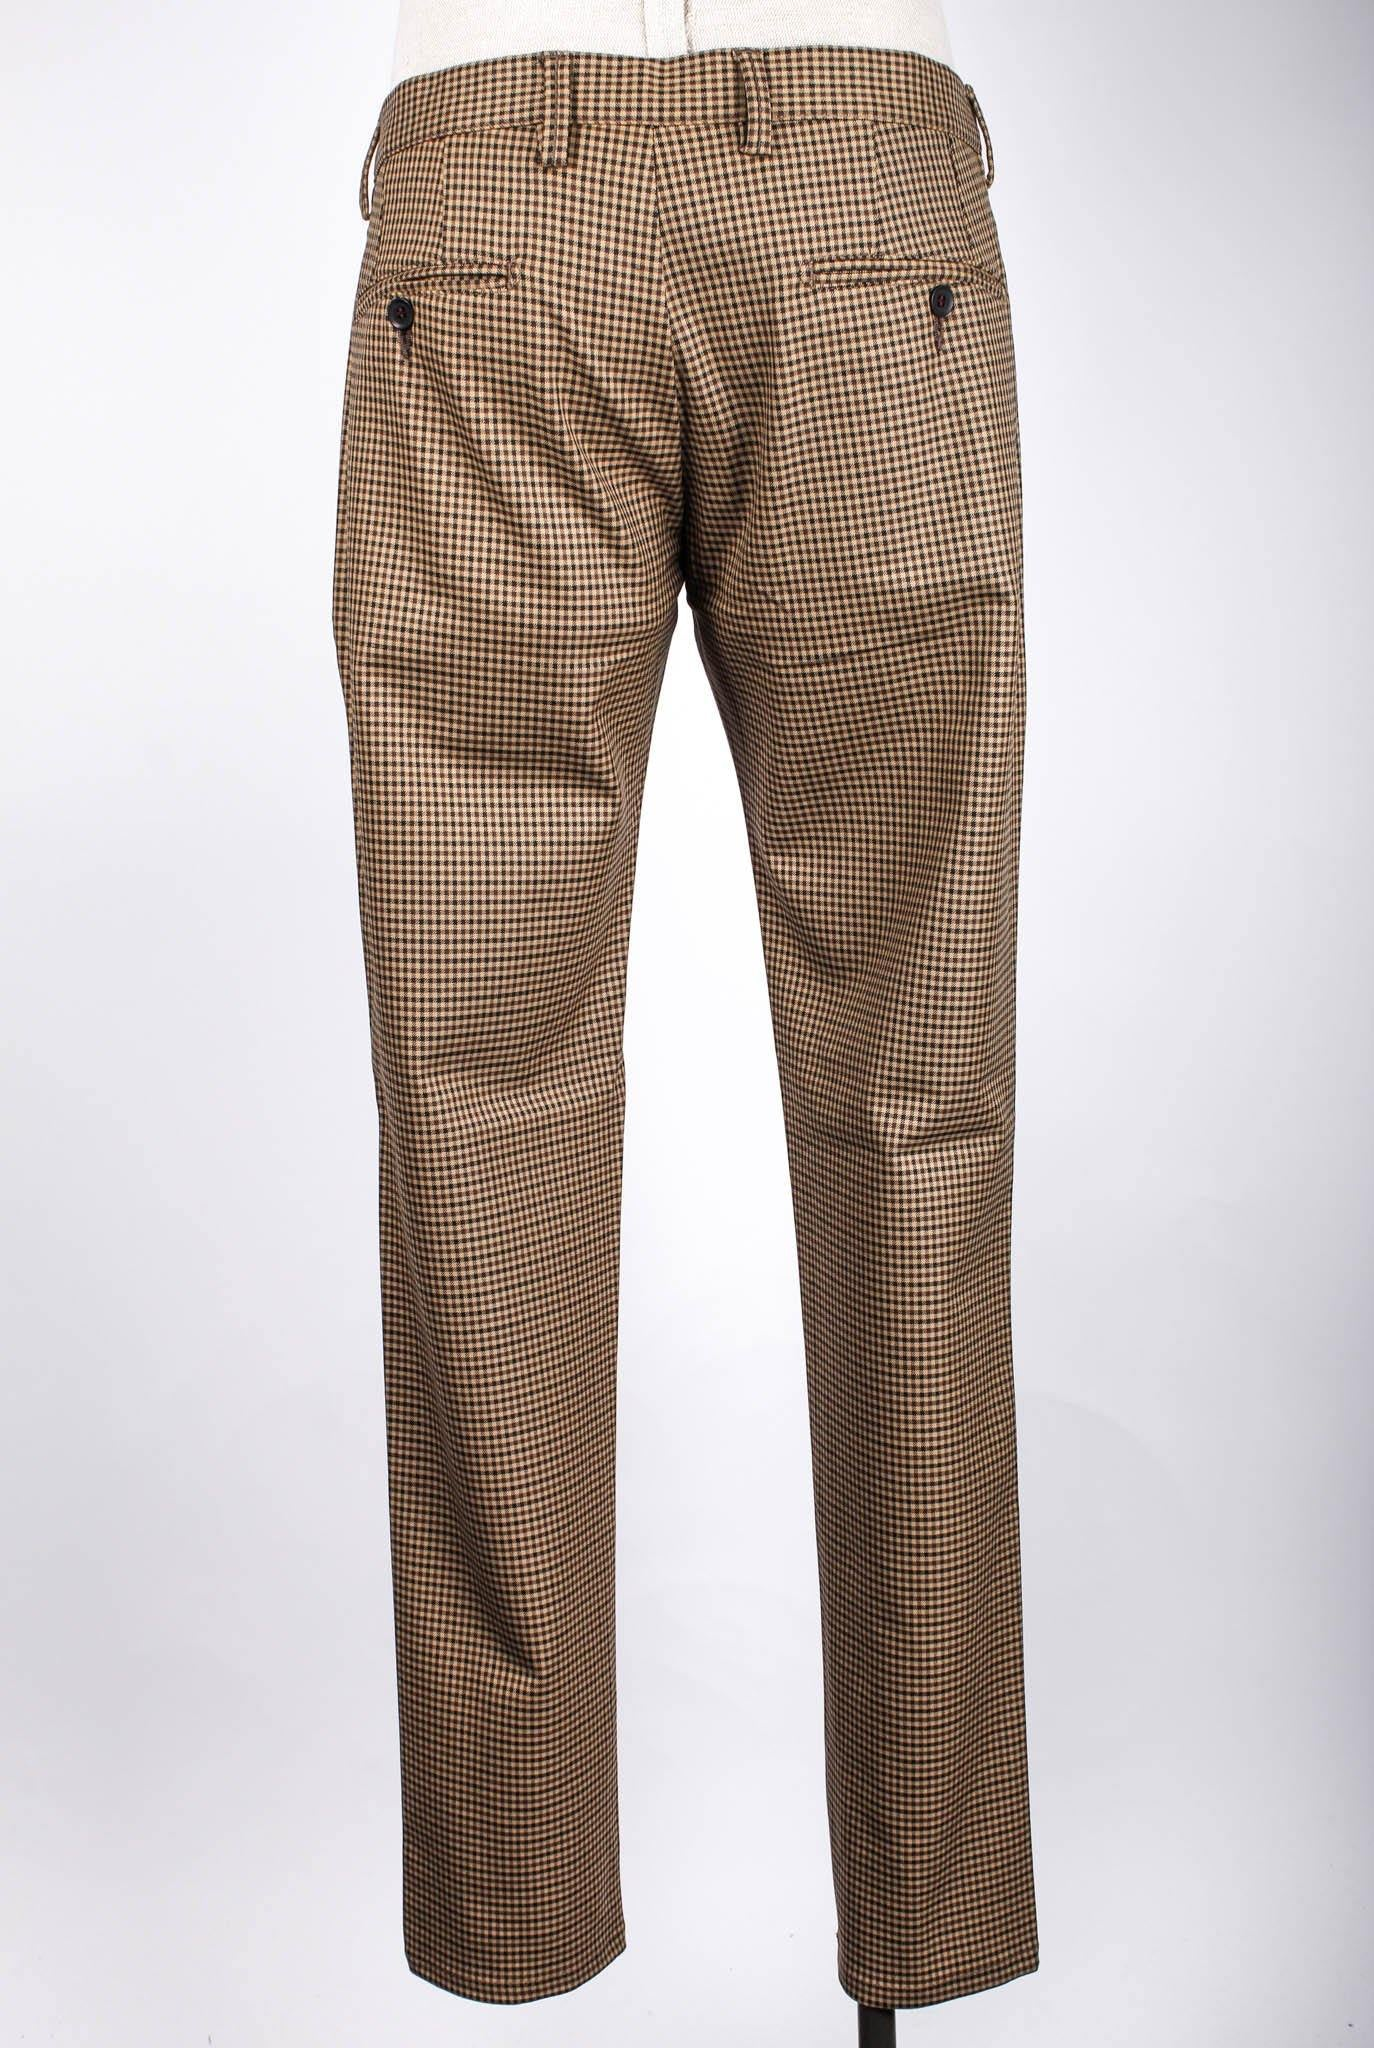 Z Euro Trouser - Haight & Ashbury